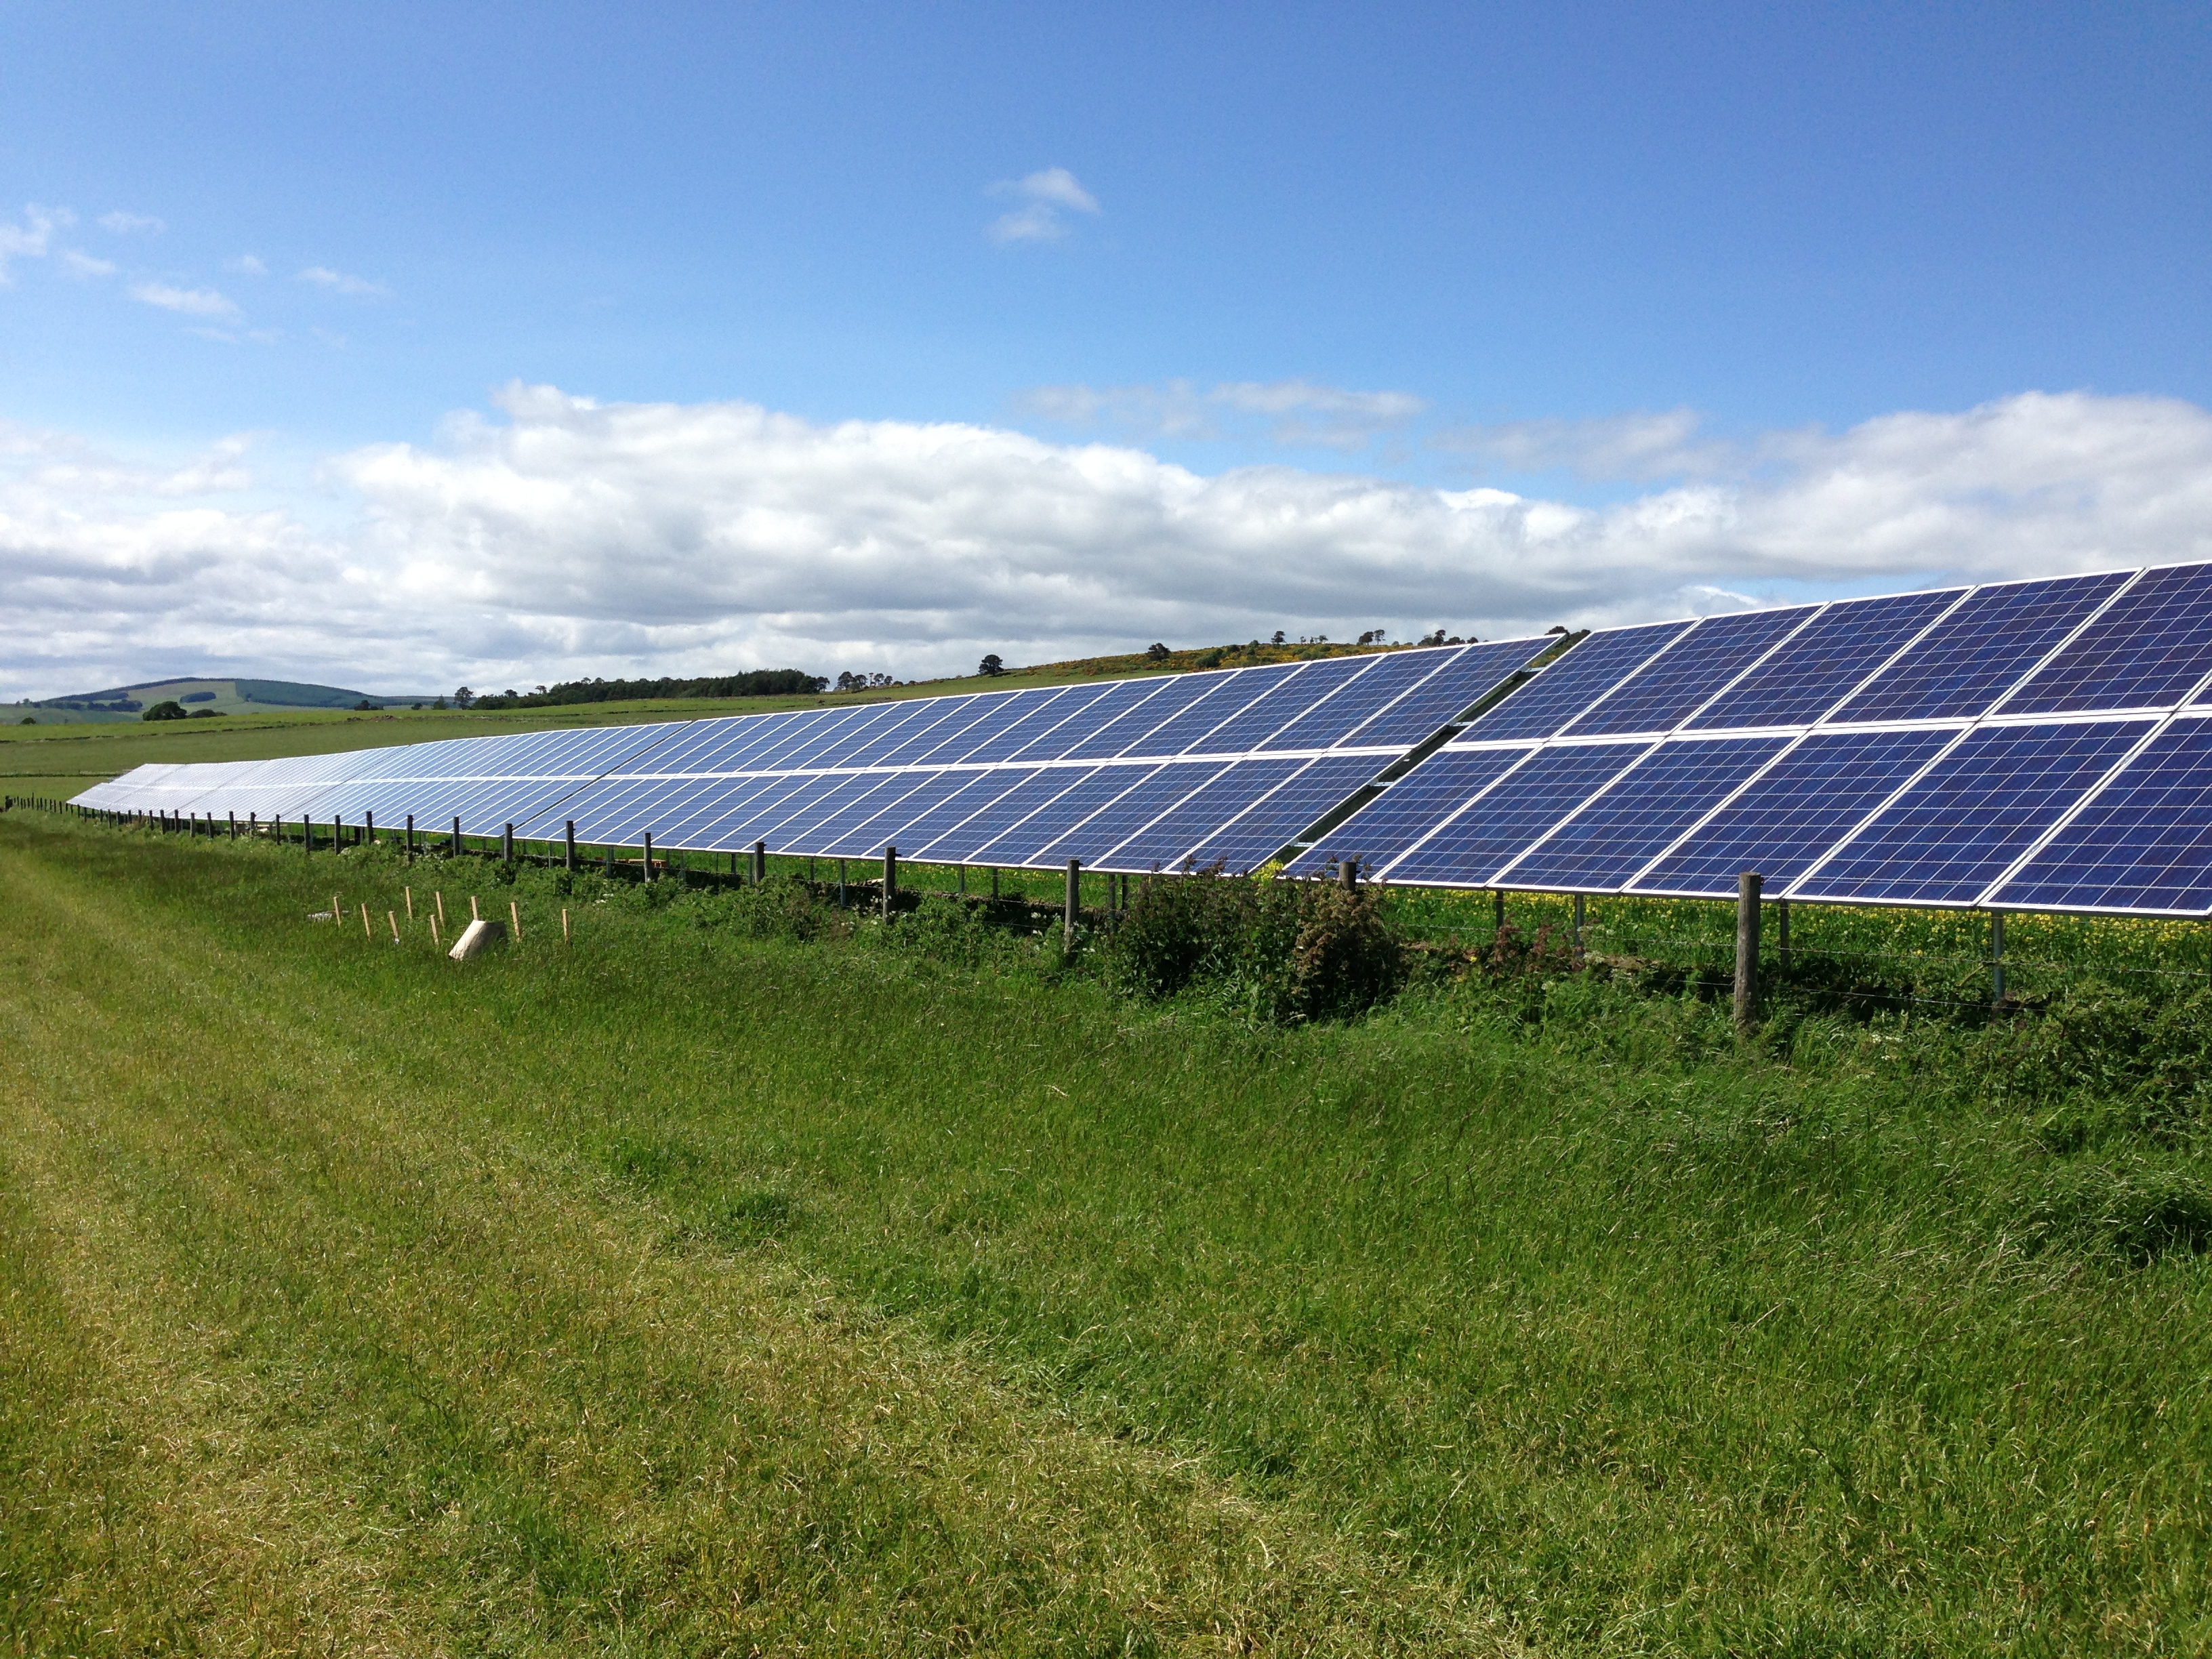 Guise Farm 50kWp PV System Exceeds All Predictions